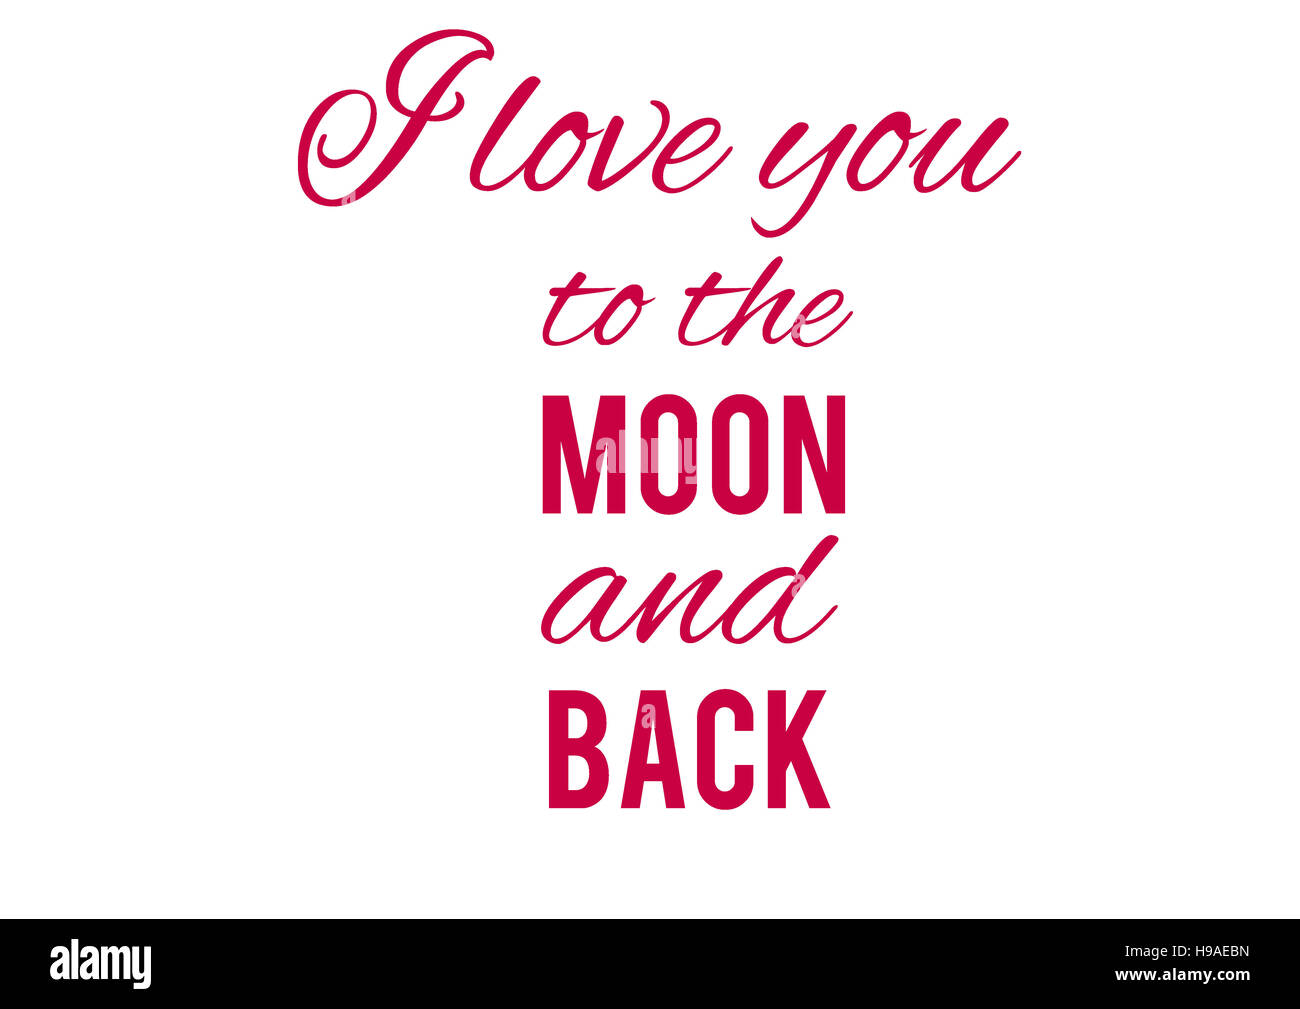 Quote I Love You To The Moon And Back I Love You To The Moon And Back Backgrounds Textures Motivation